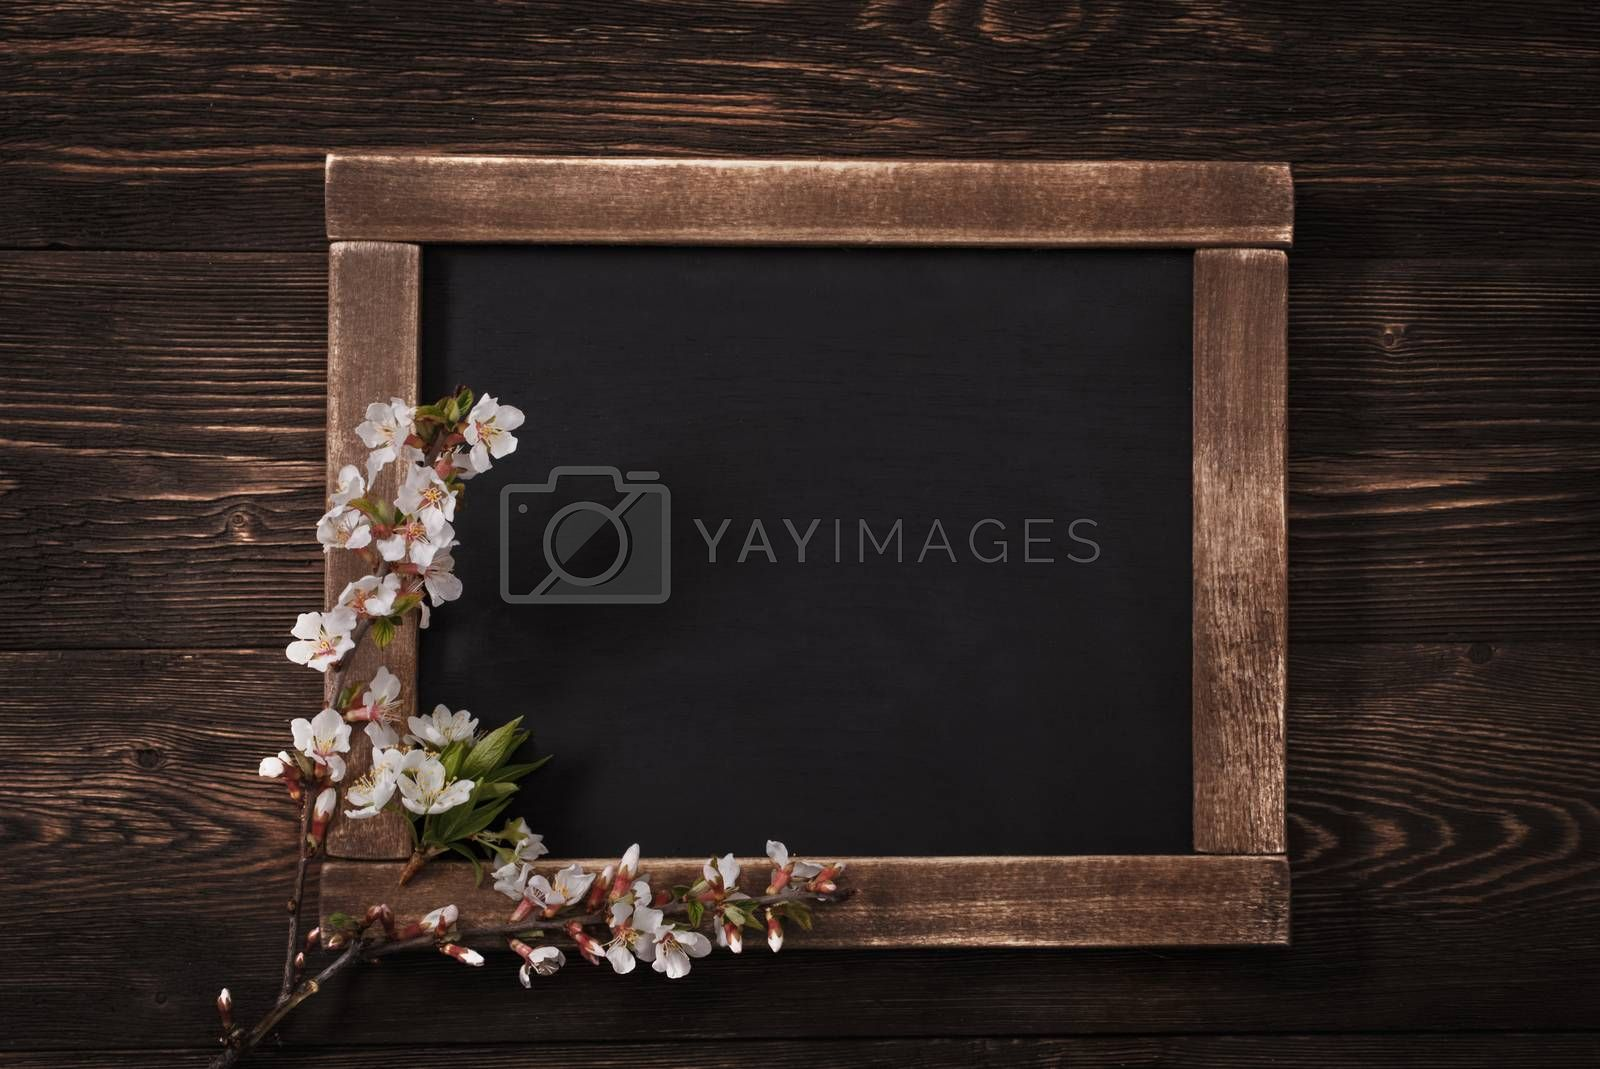 Royalty free image of Old vintage school slate with flowers by primopiano